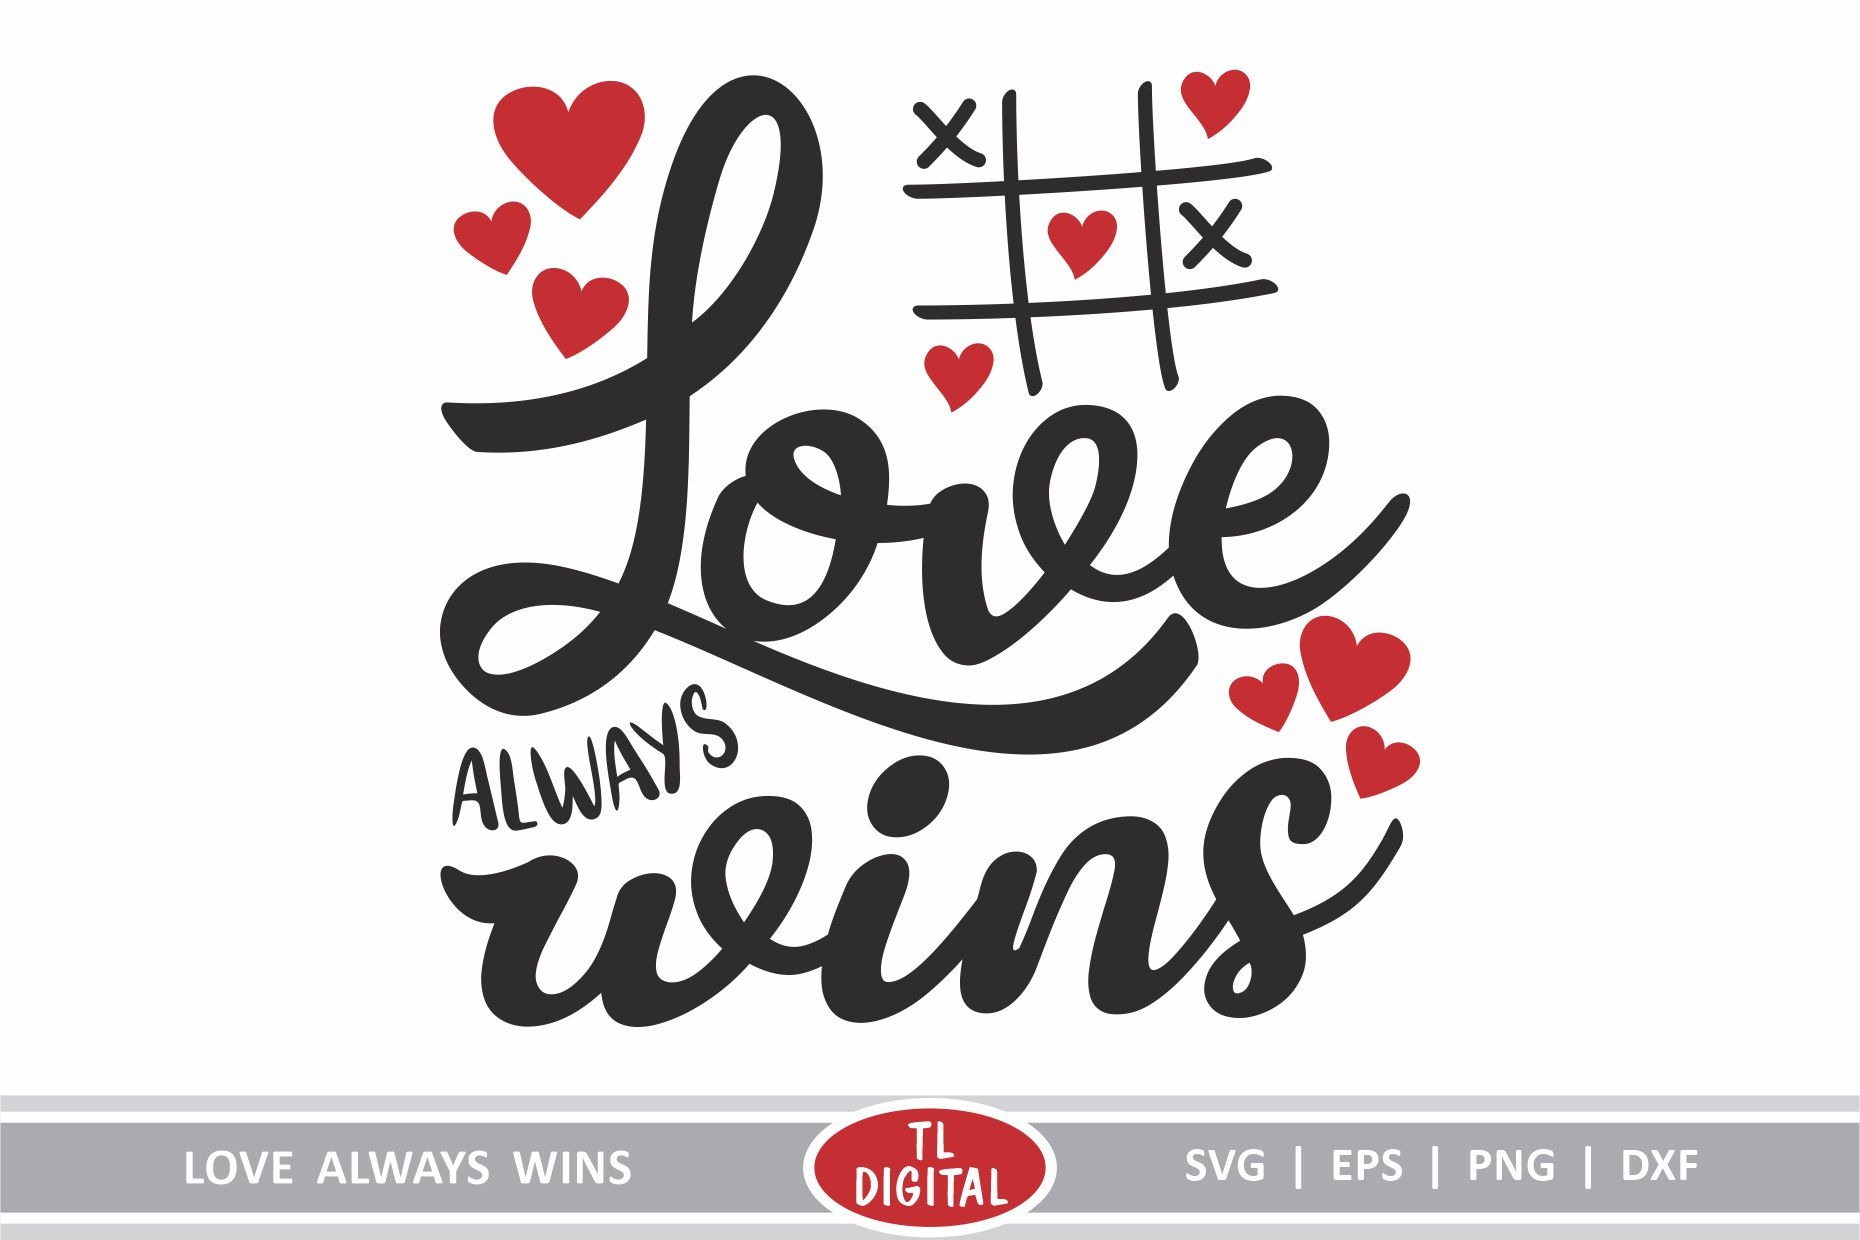 Love Always Wins - SVG   EPS   PNG  DXF - Valentines Graphic example image 1